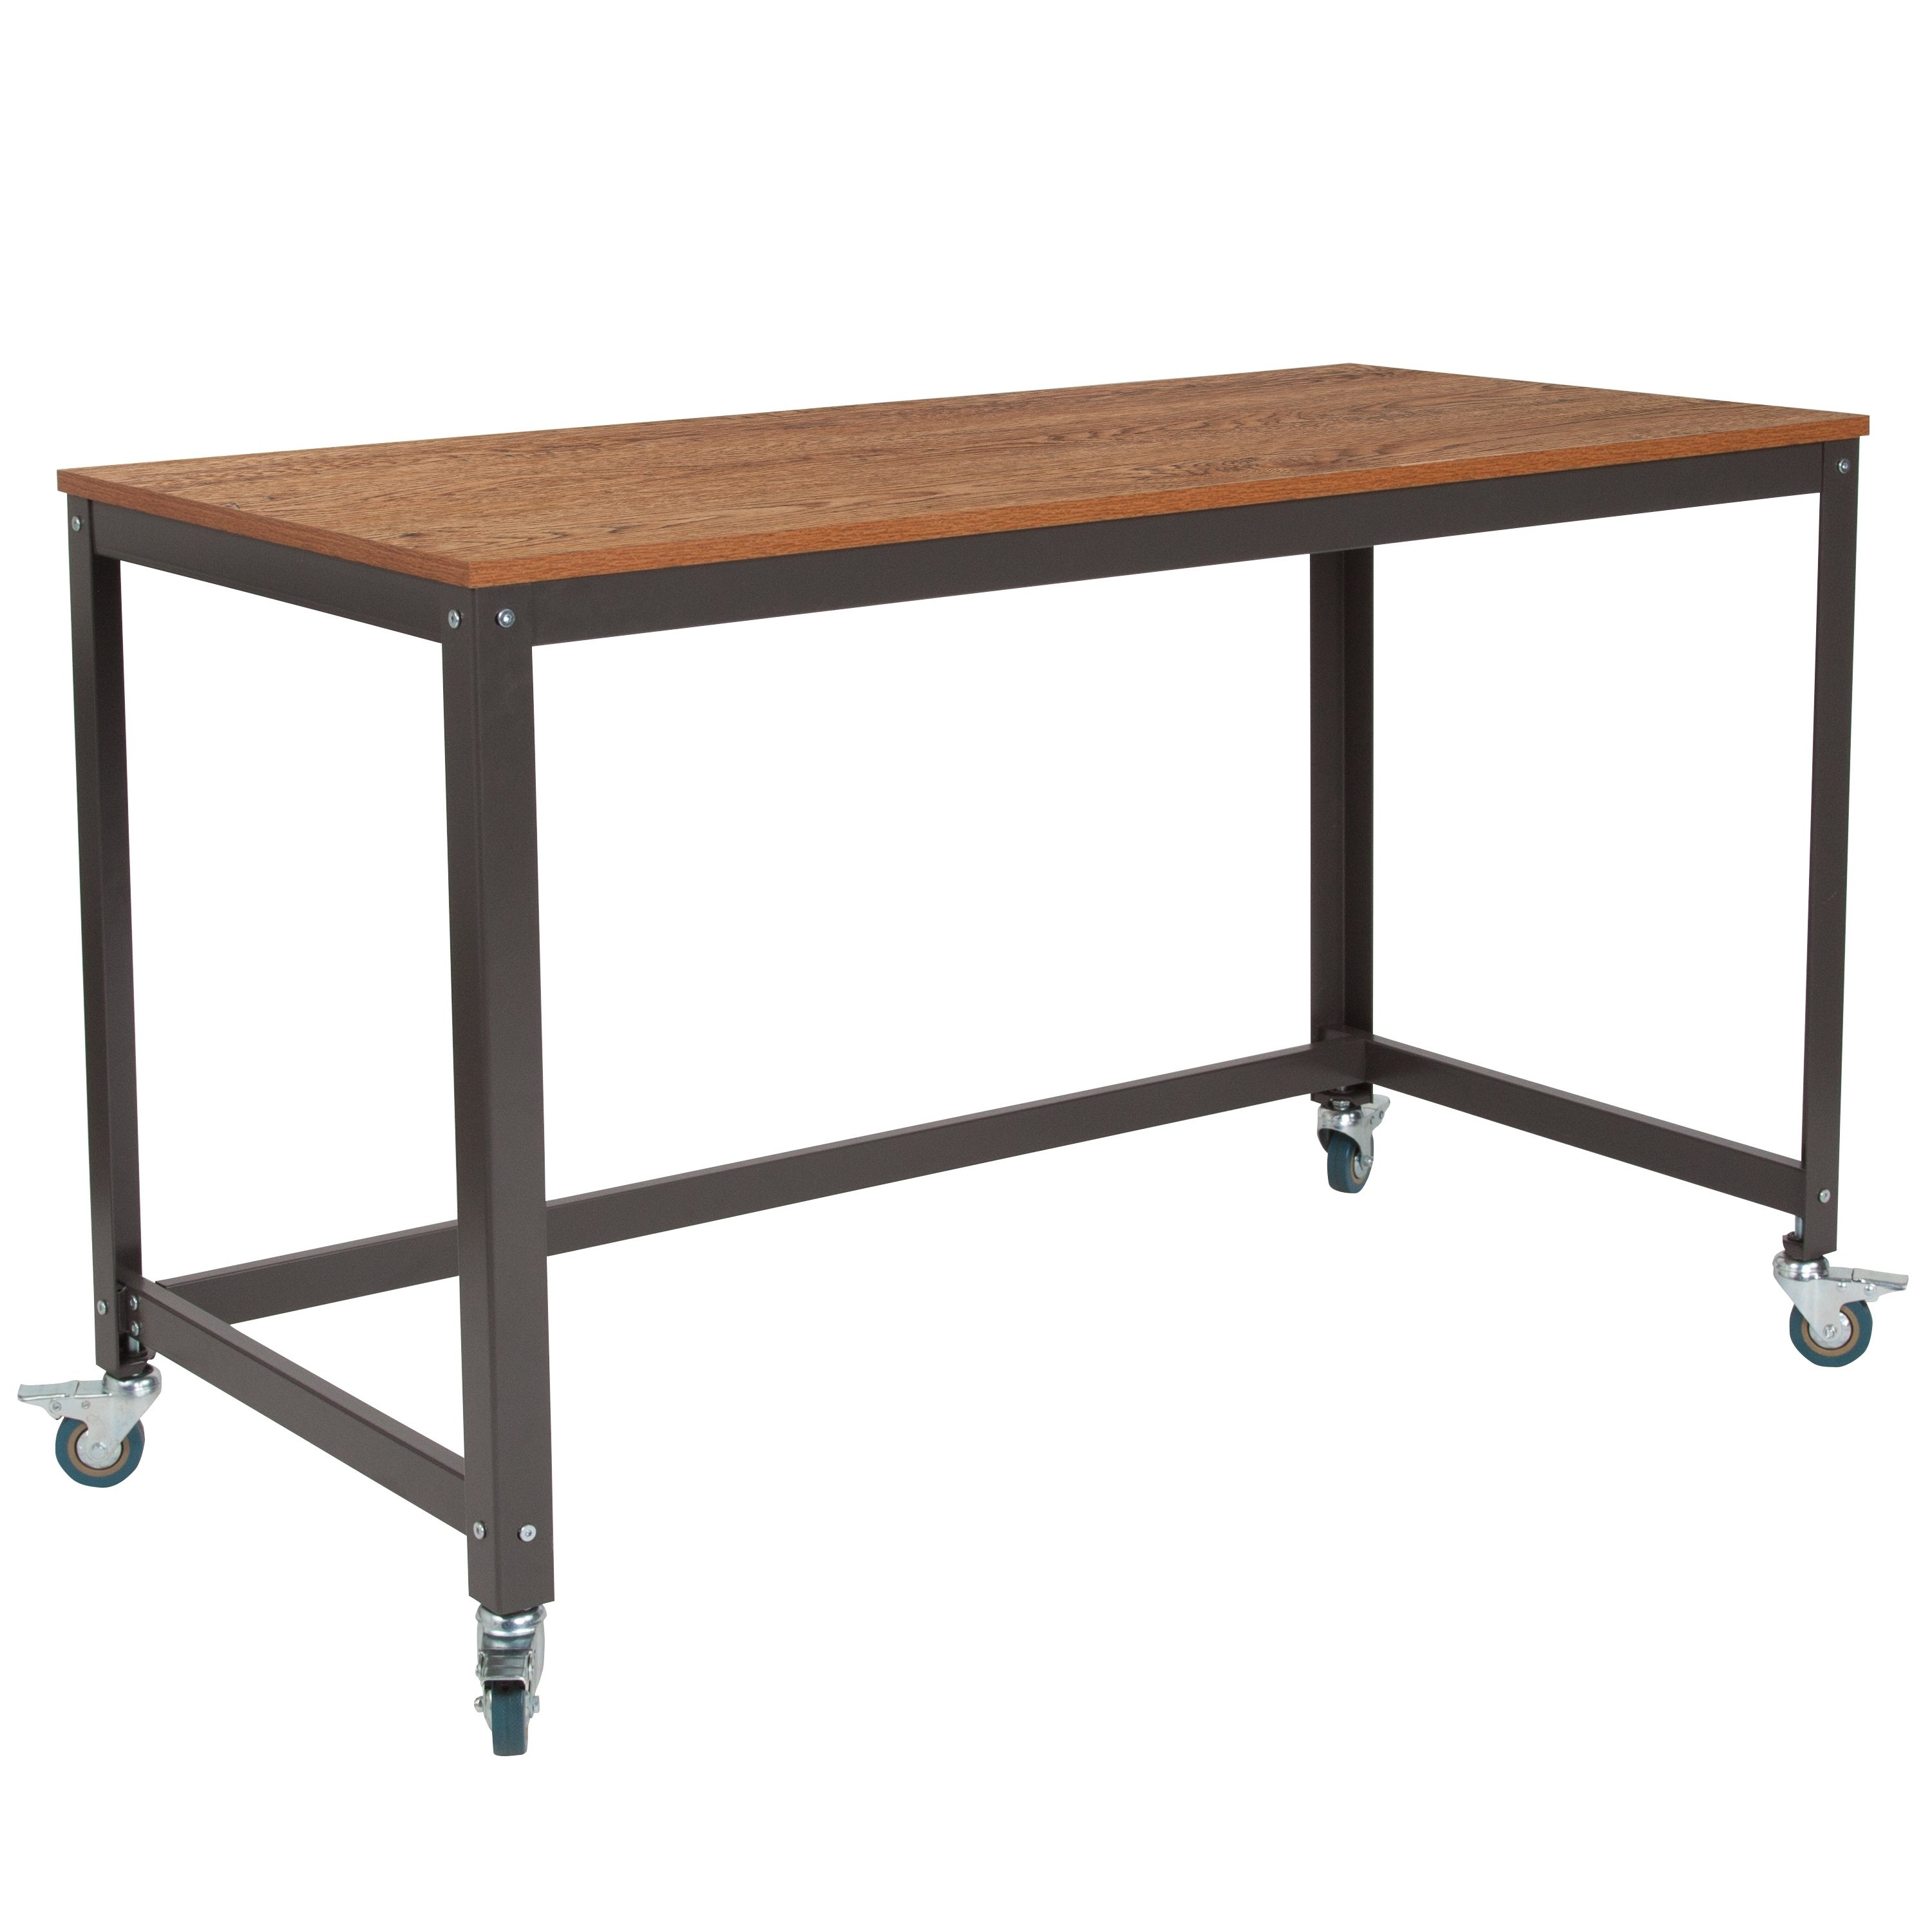 Lancaster Home Livingston Collection Wood Grain Finish With Metal Wheels Computer Table And Desk